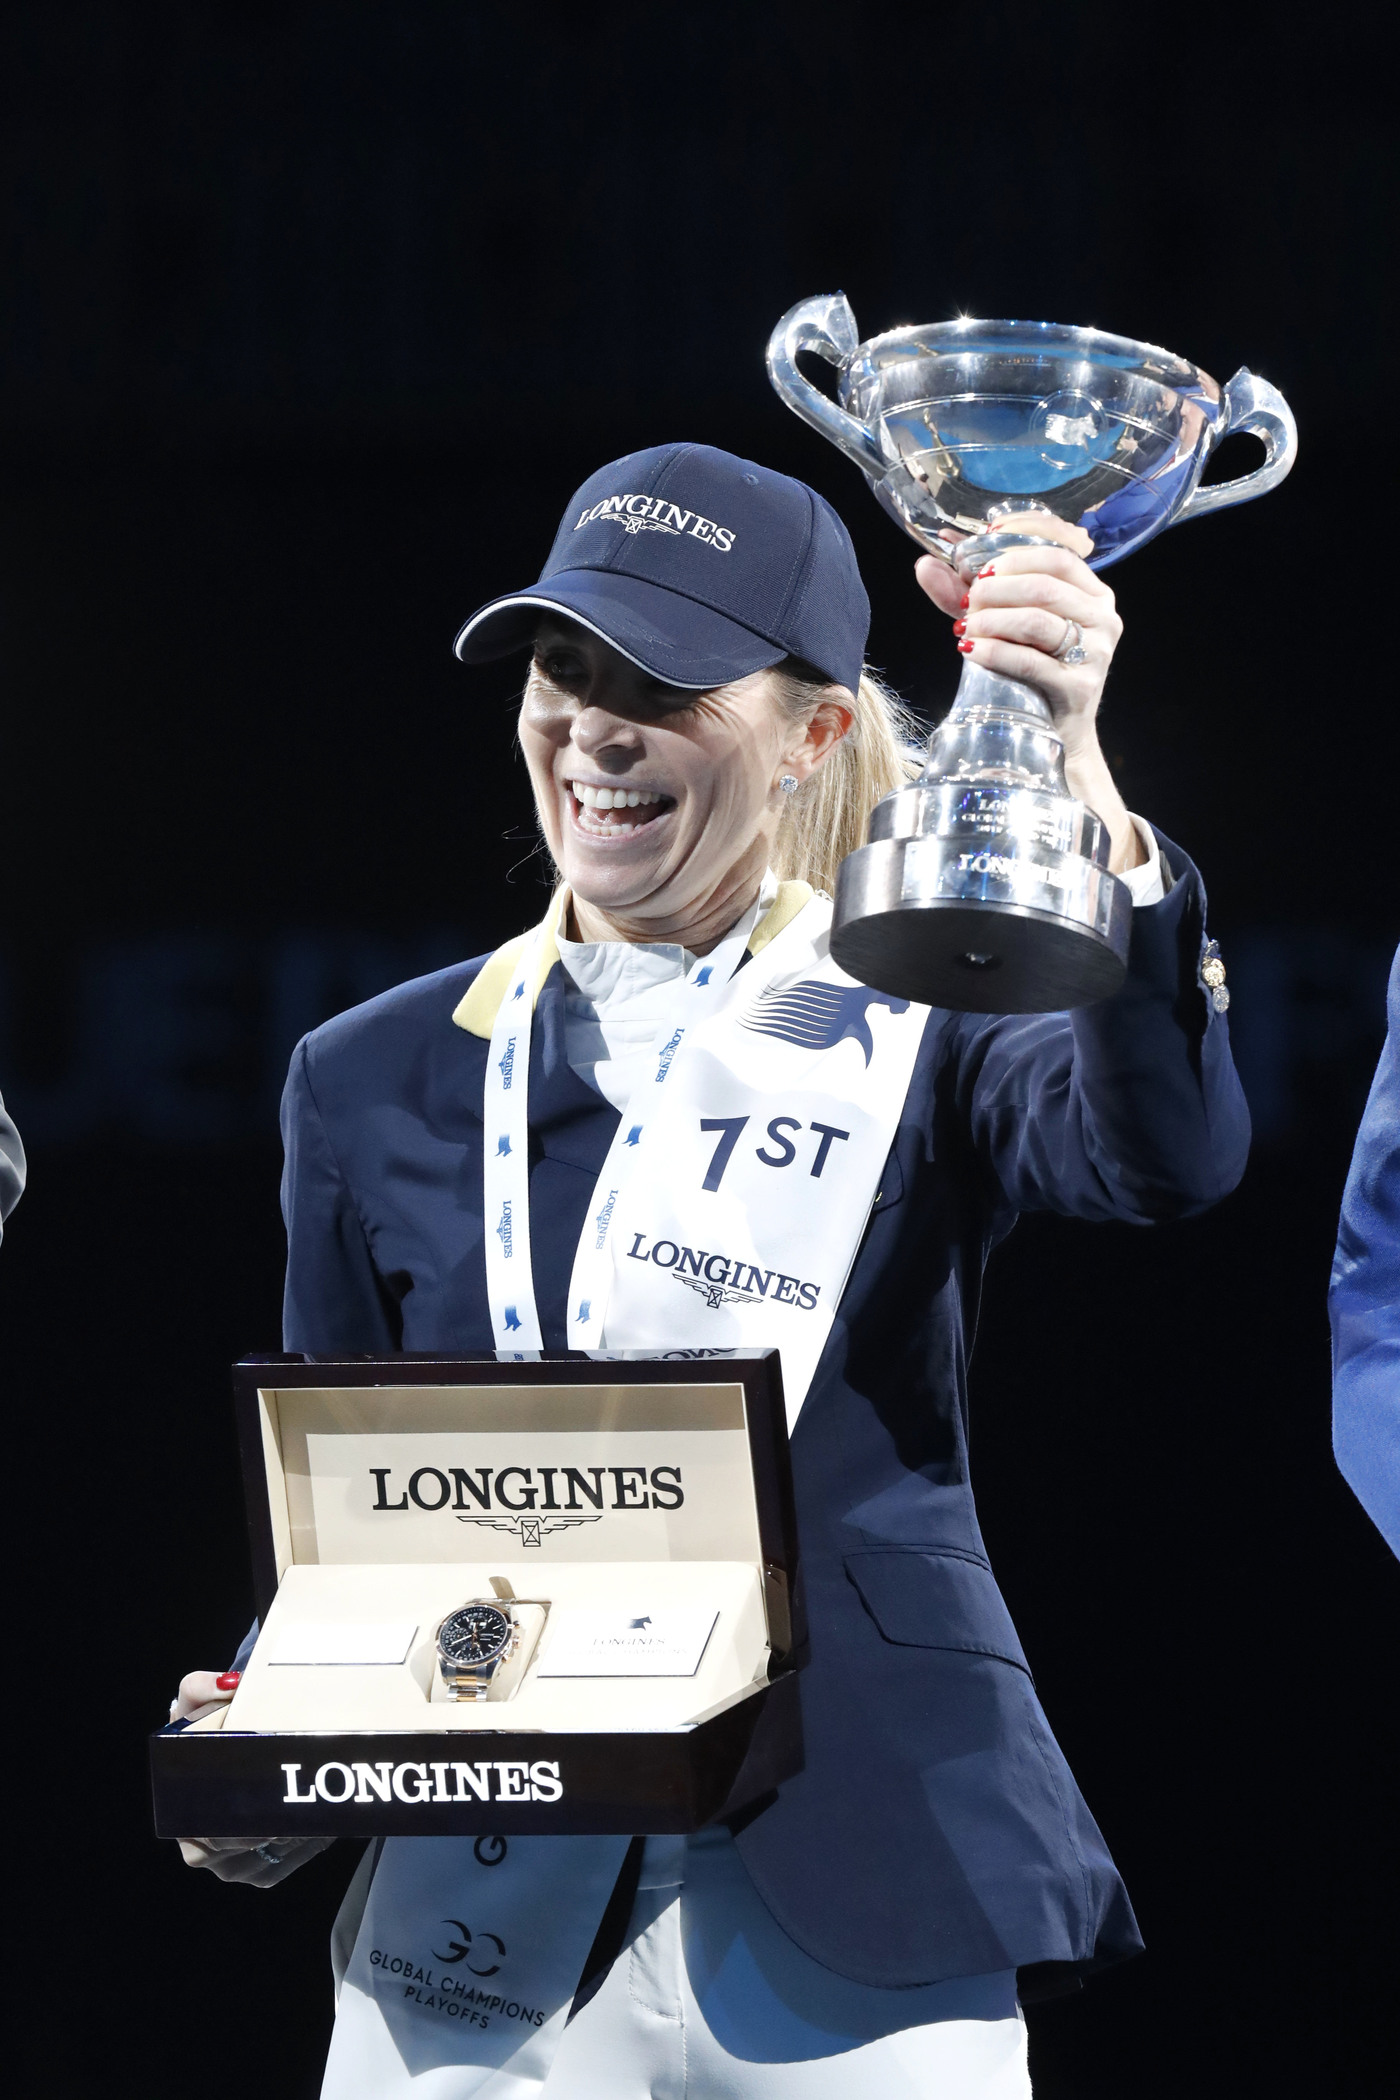 Longines Show Jumping Event: Fantastic victory of Edwina Tops-Alexander who becomes the Champion of the Longines Global Champions Tour Super Grand Prix 1